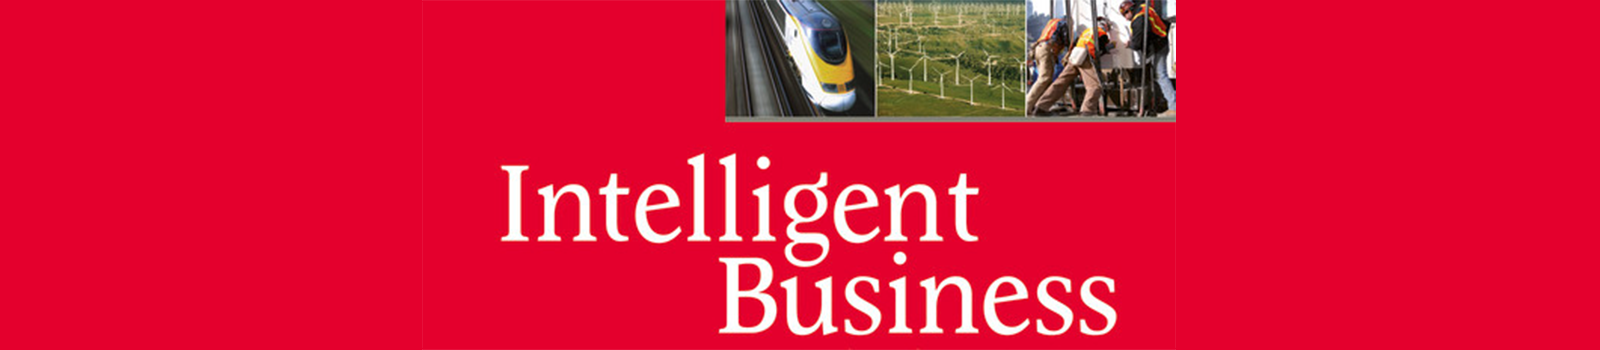 intelligent business english course